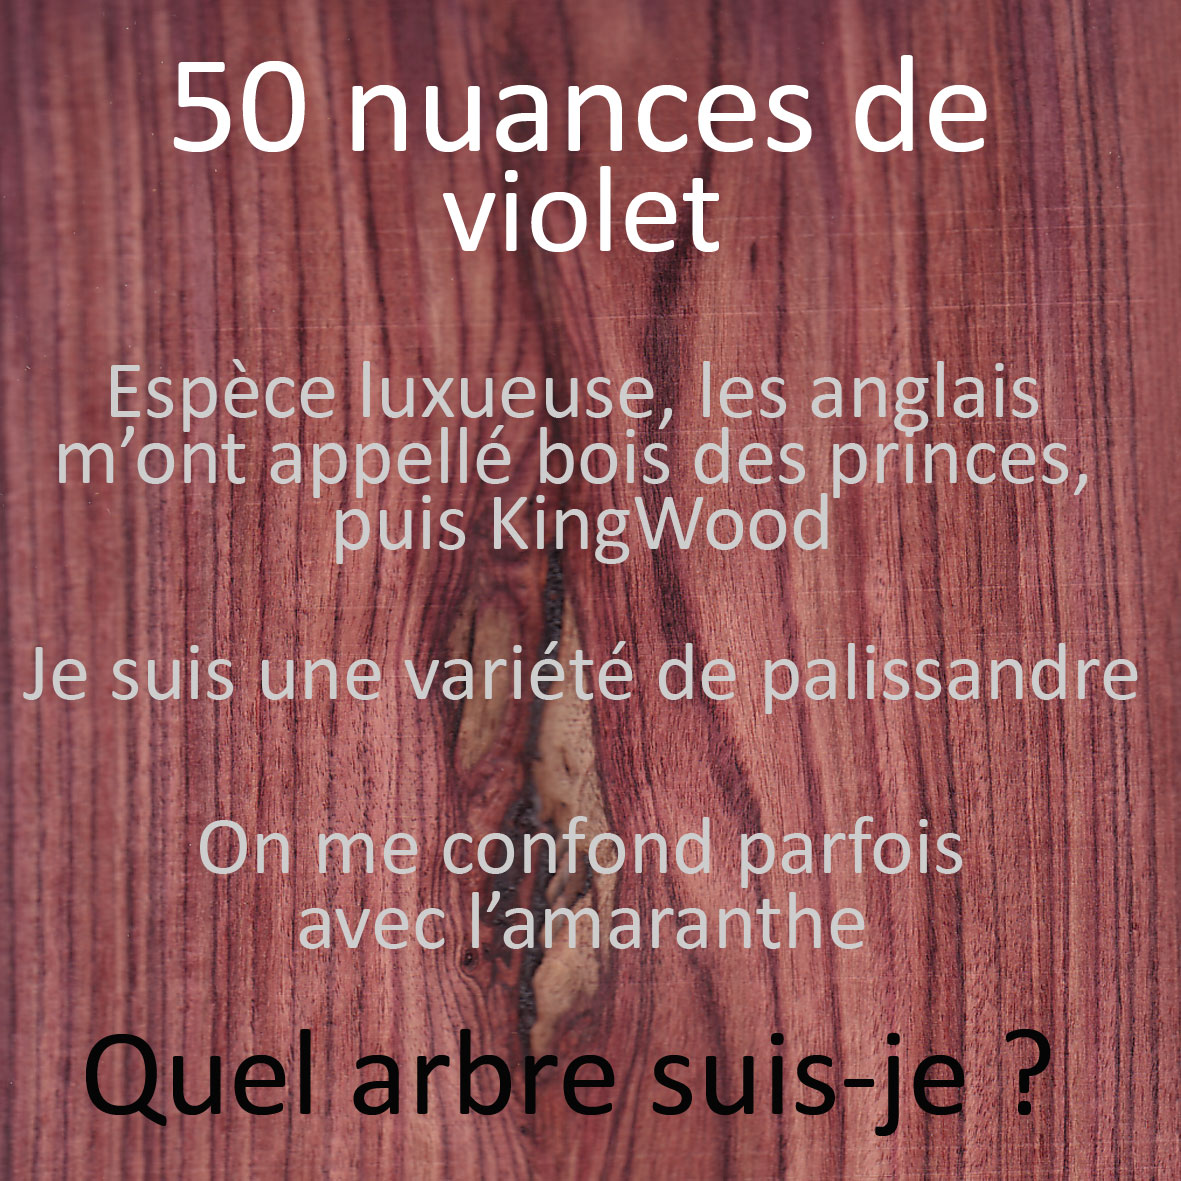 quiz essences de bois 50 nuances de violet ecoute le bois. Black Bedroom Furniture Sets. Home Design Ideas